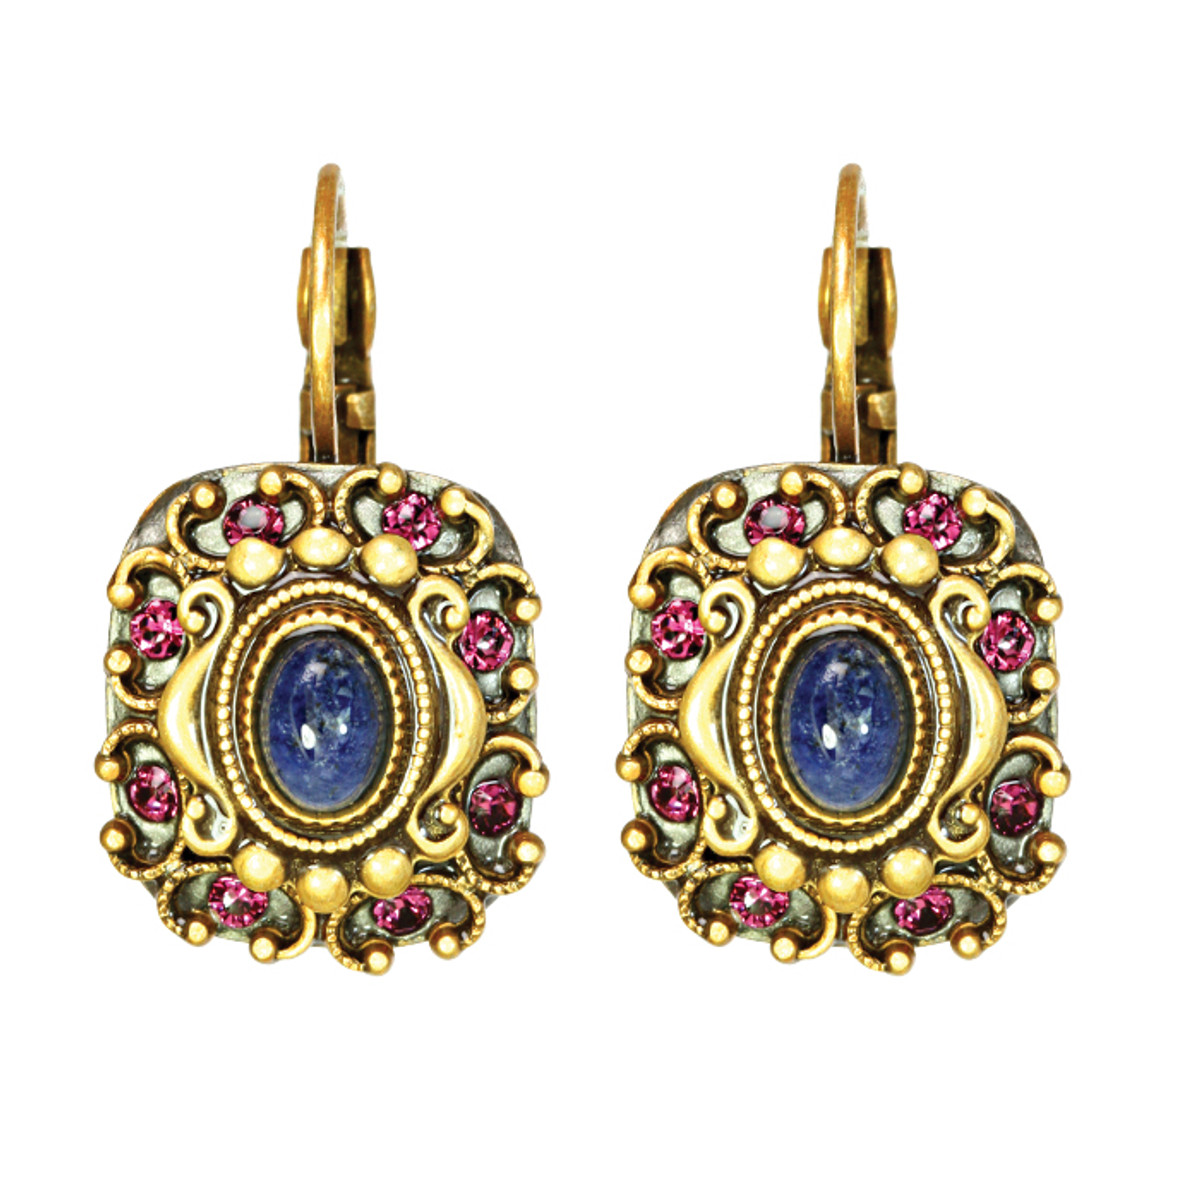 Michal Golan Earrings - Florence Retangle Euro Wire